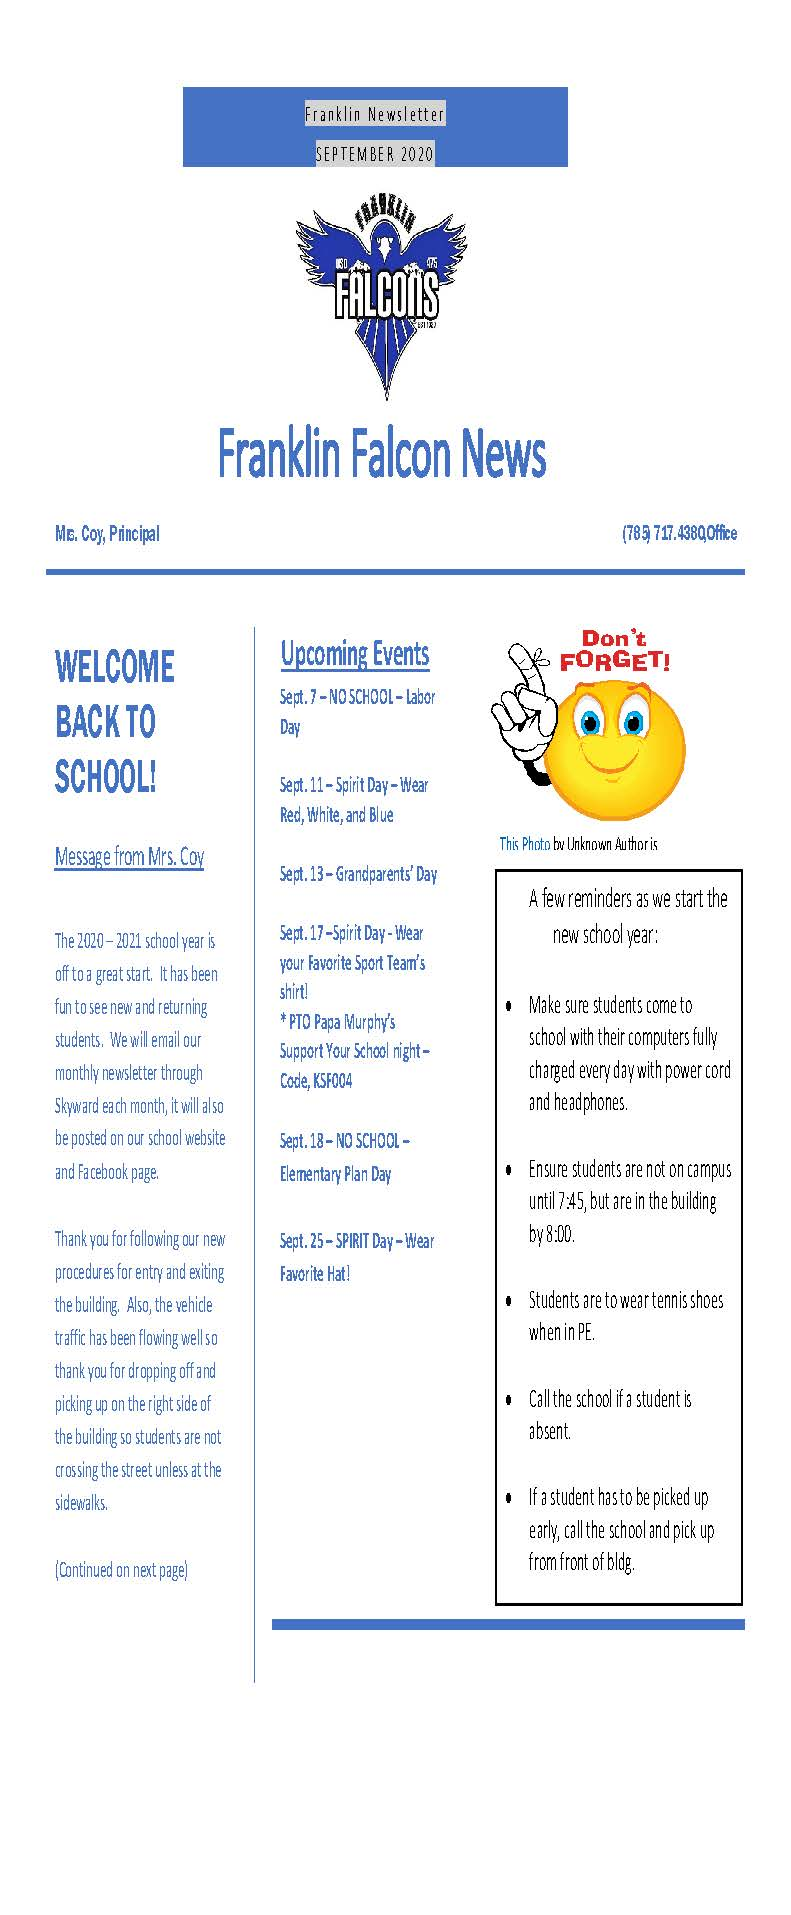 Photo of newsletter, see information above